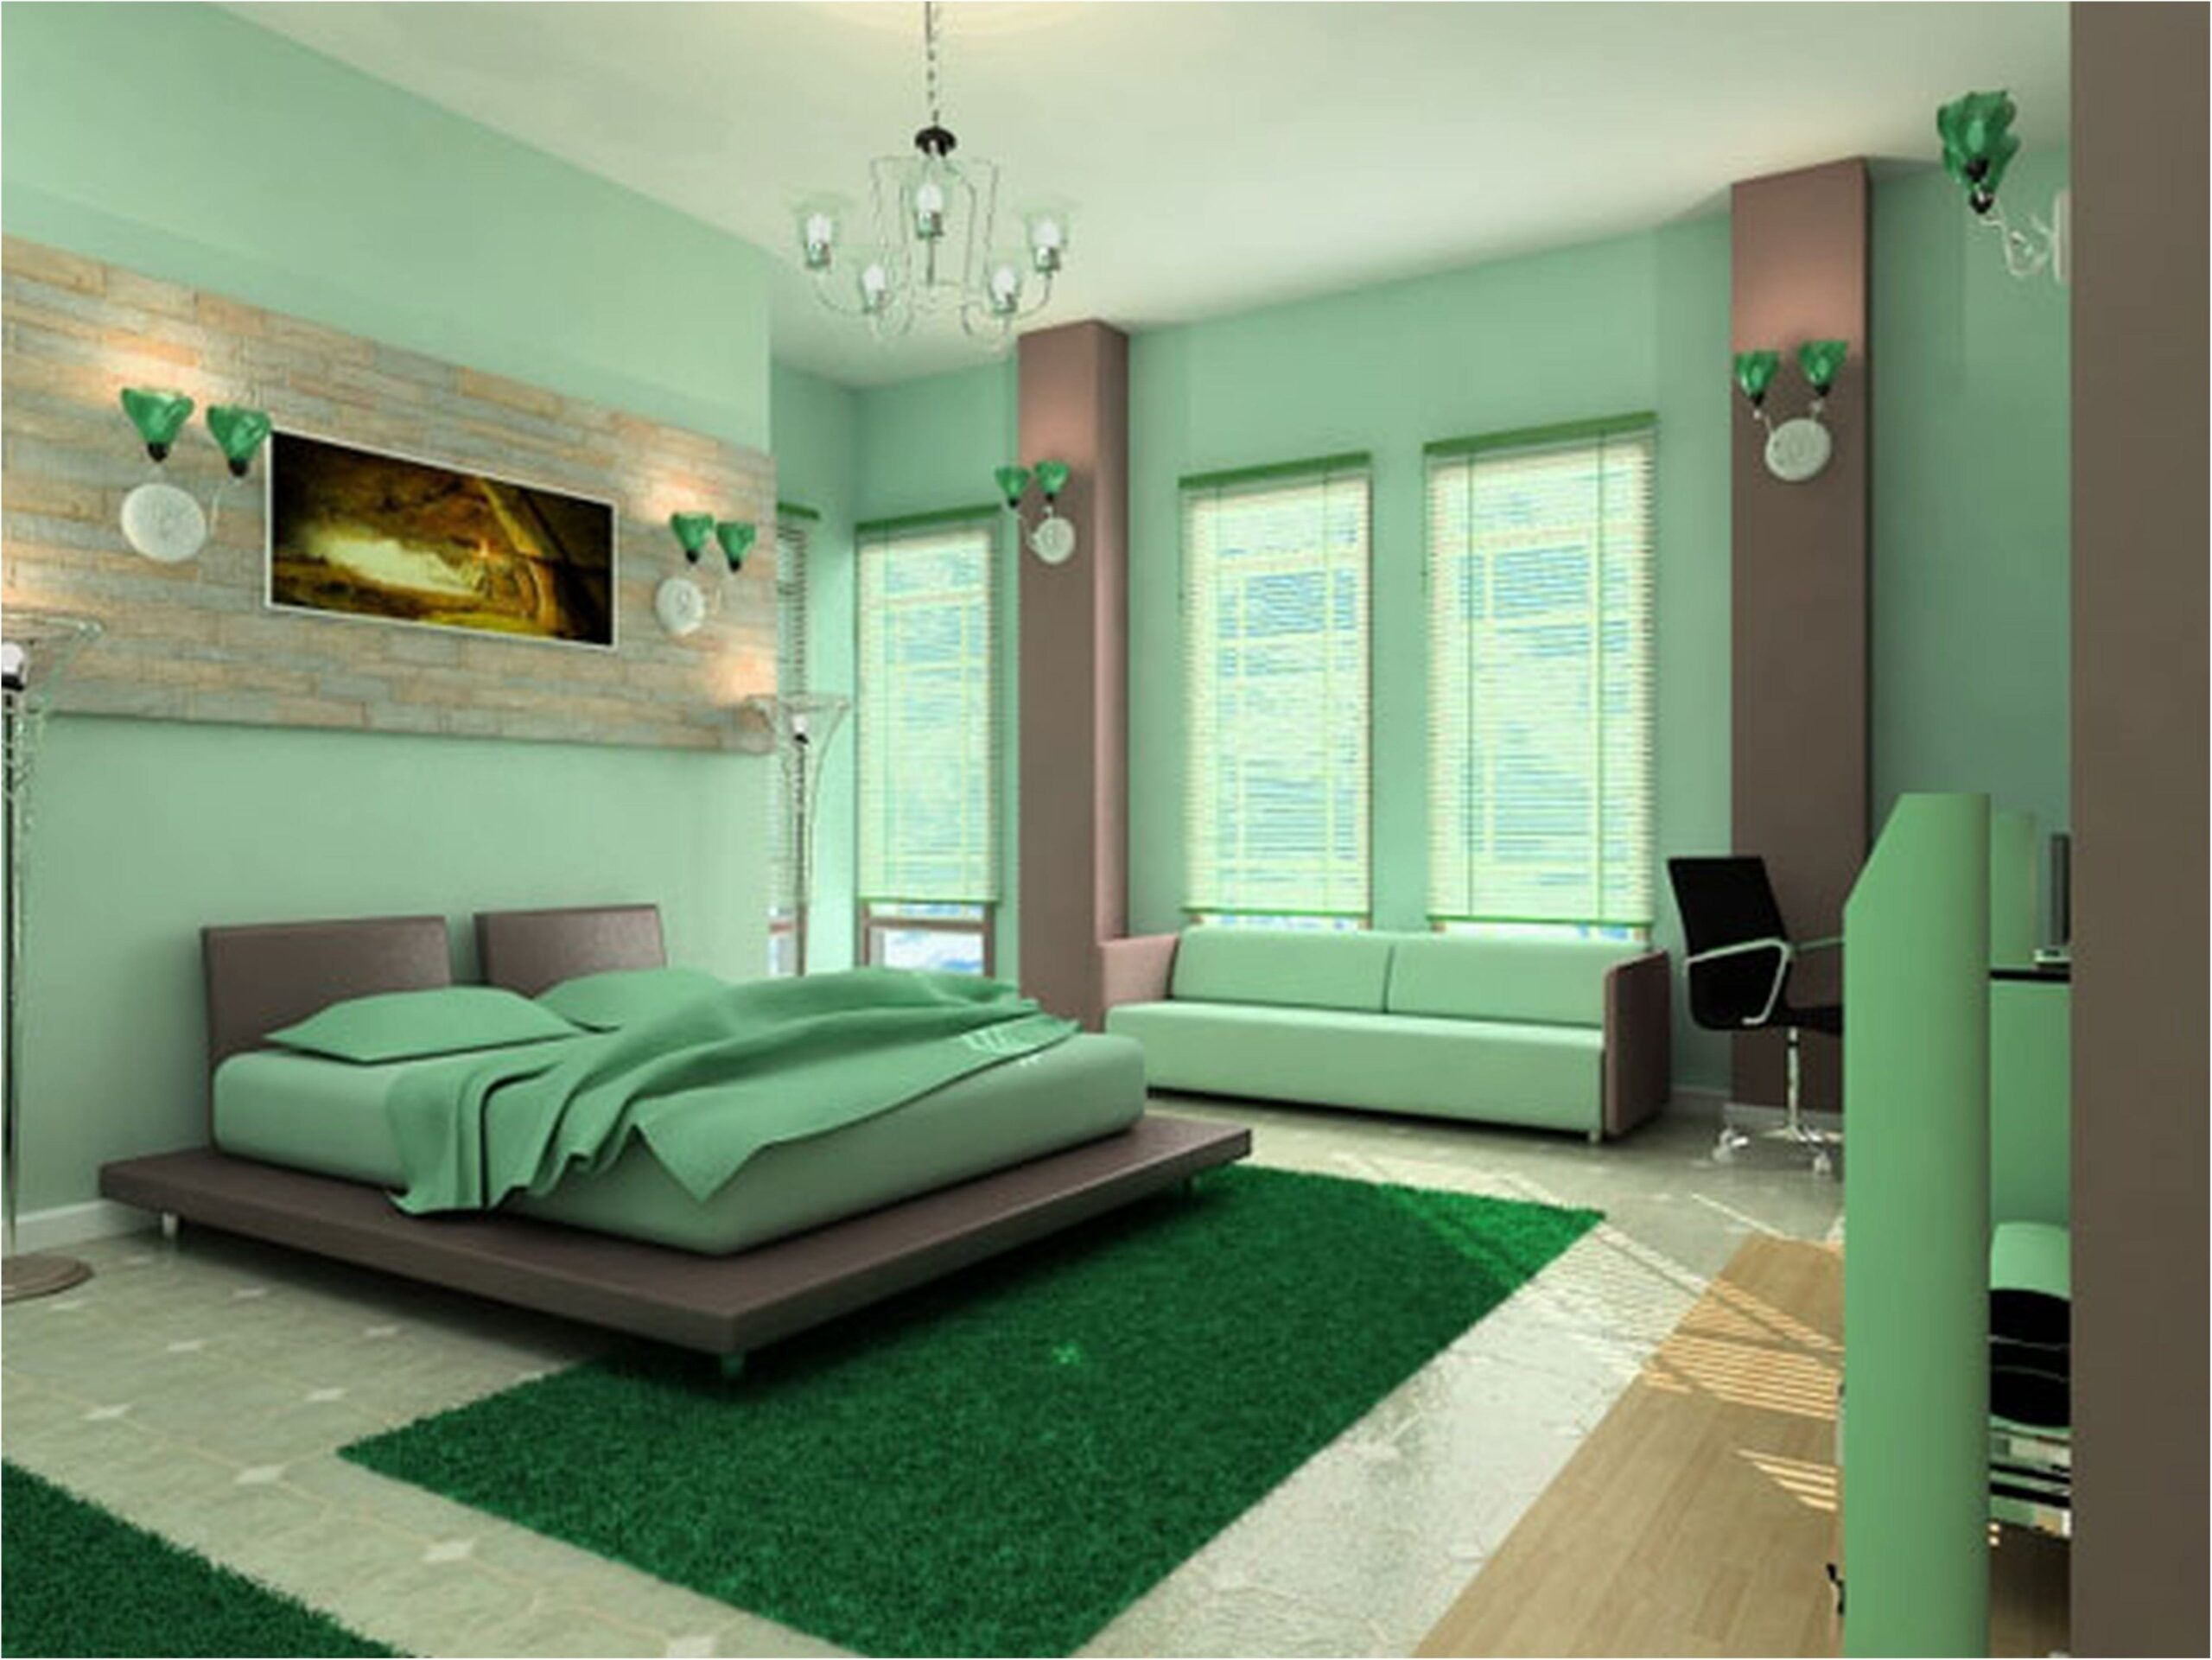 unique living room paint ideas in 2020 green bedroom on wall paint ideas for living room id=20277